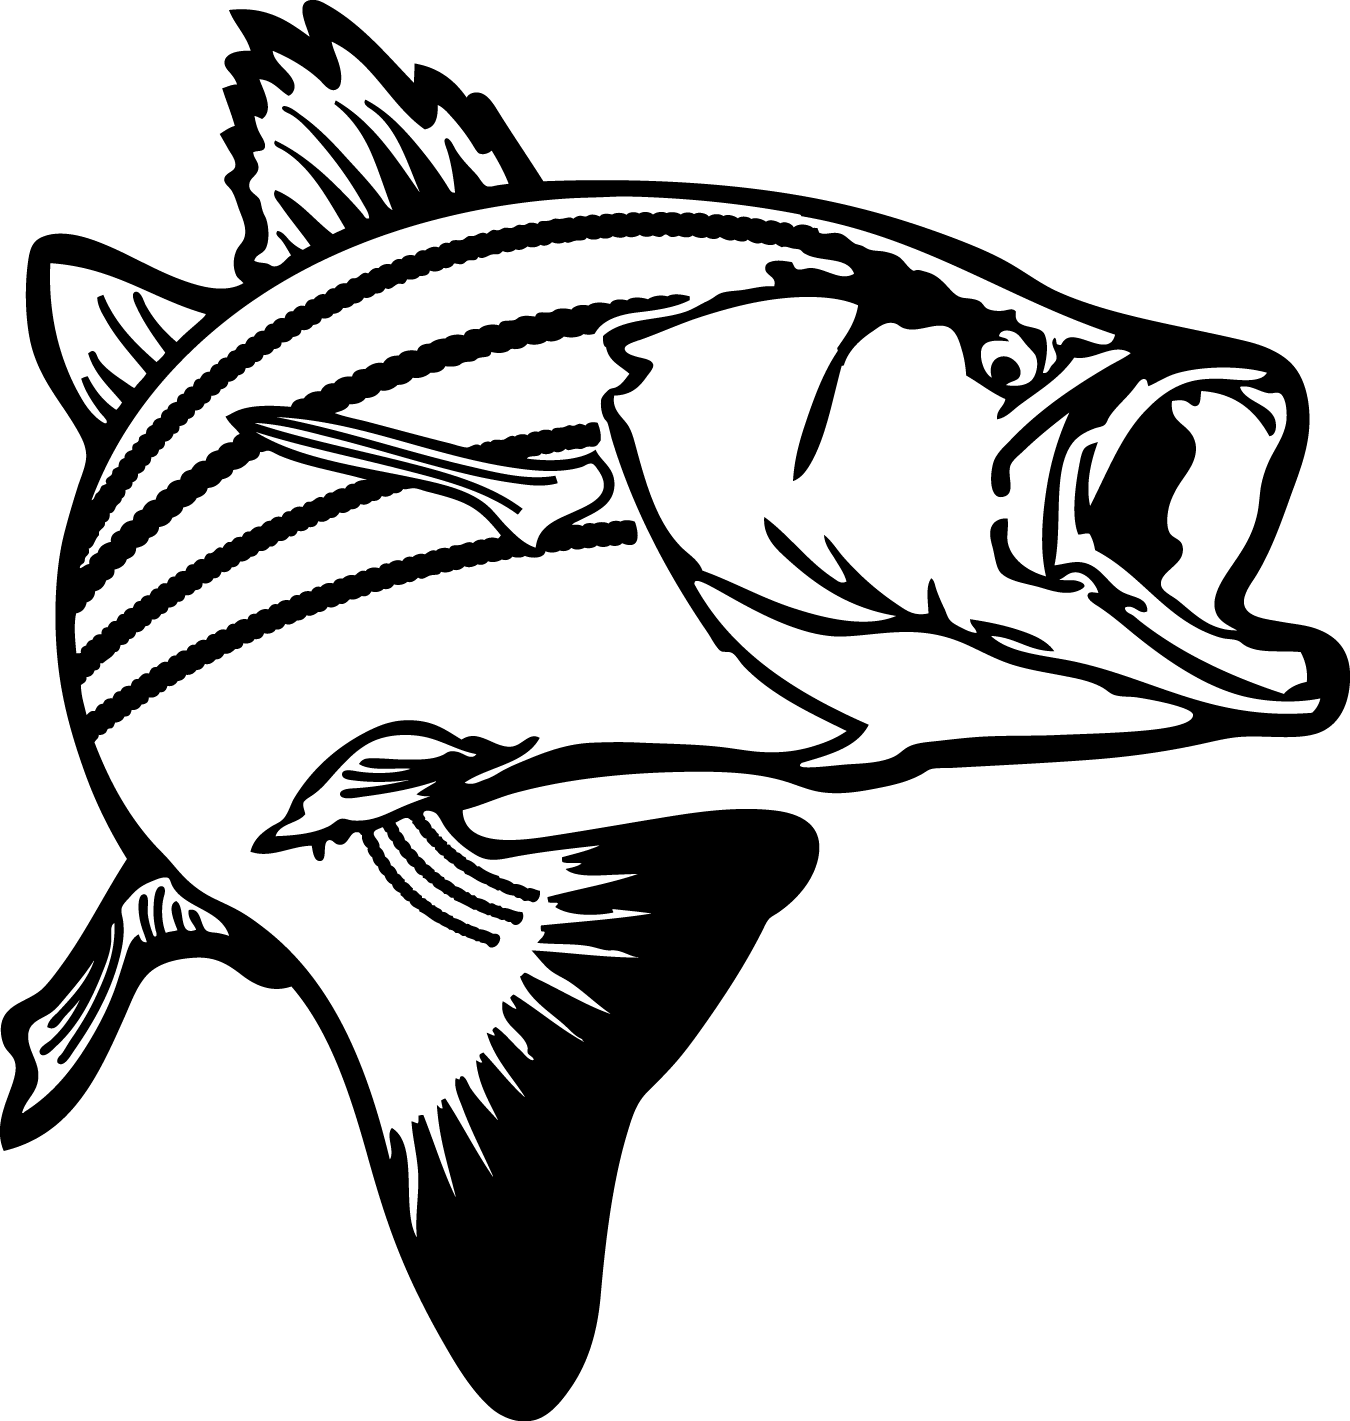 fish silhouettes colouring pages